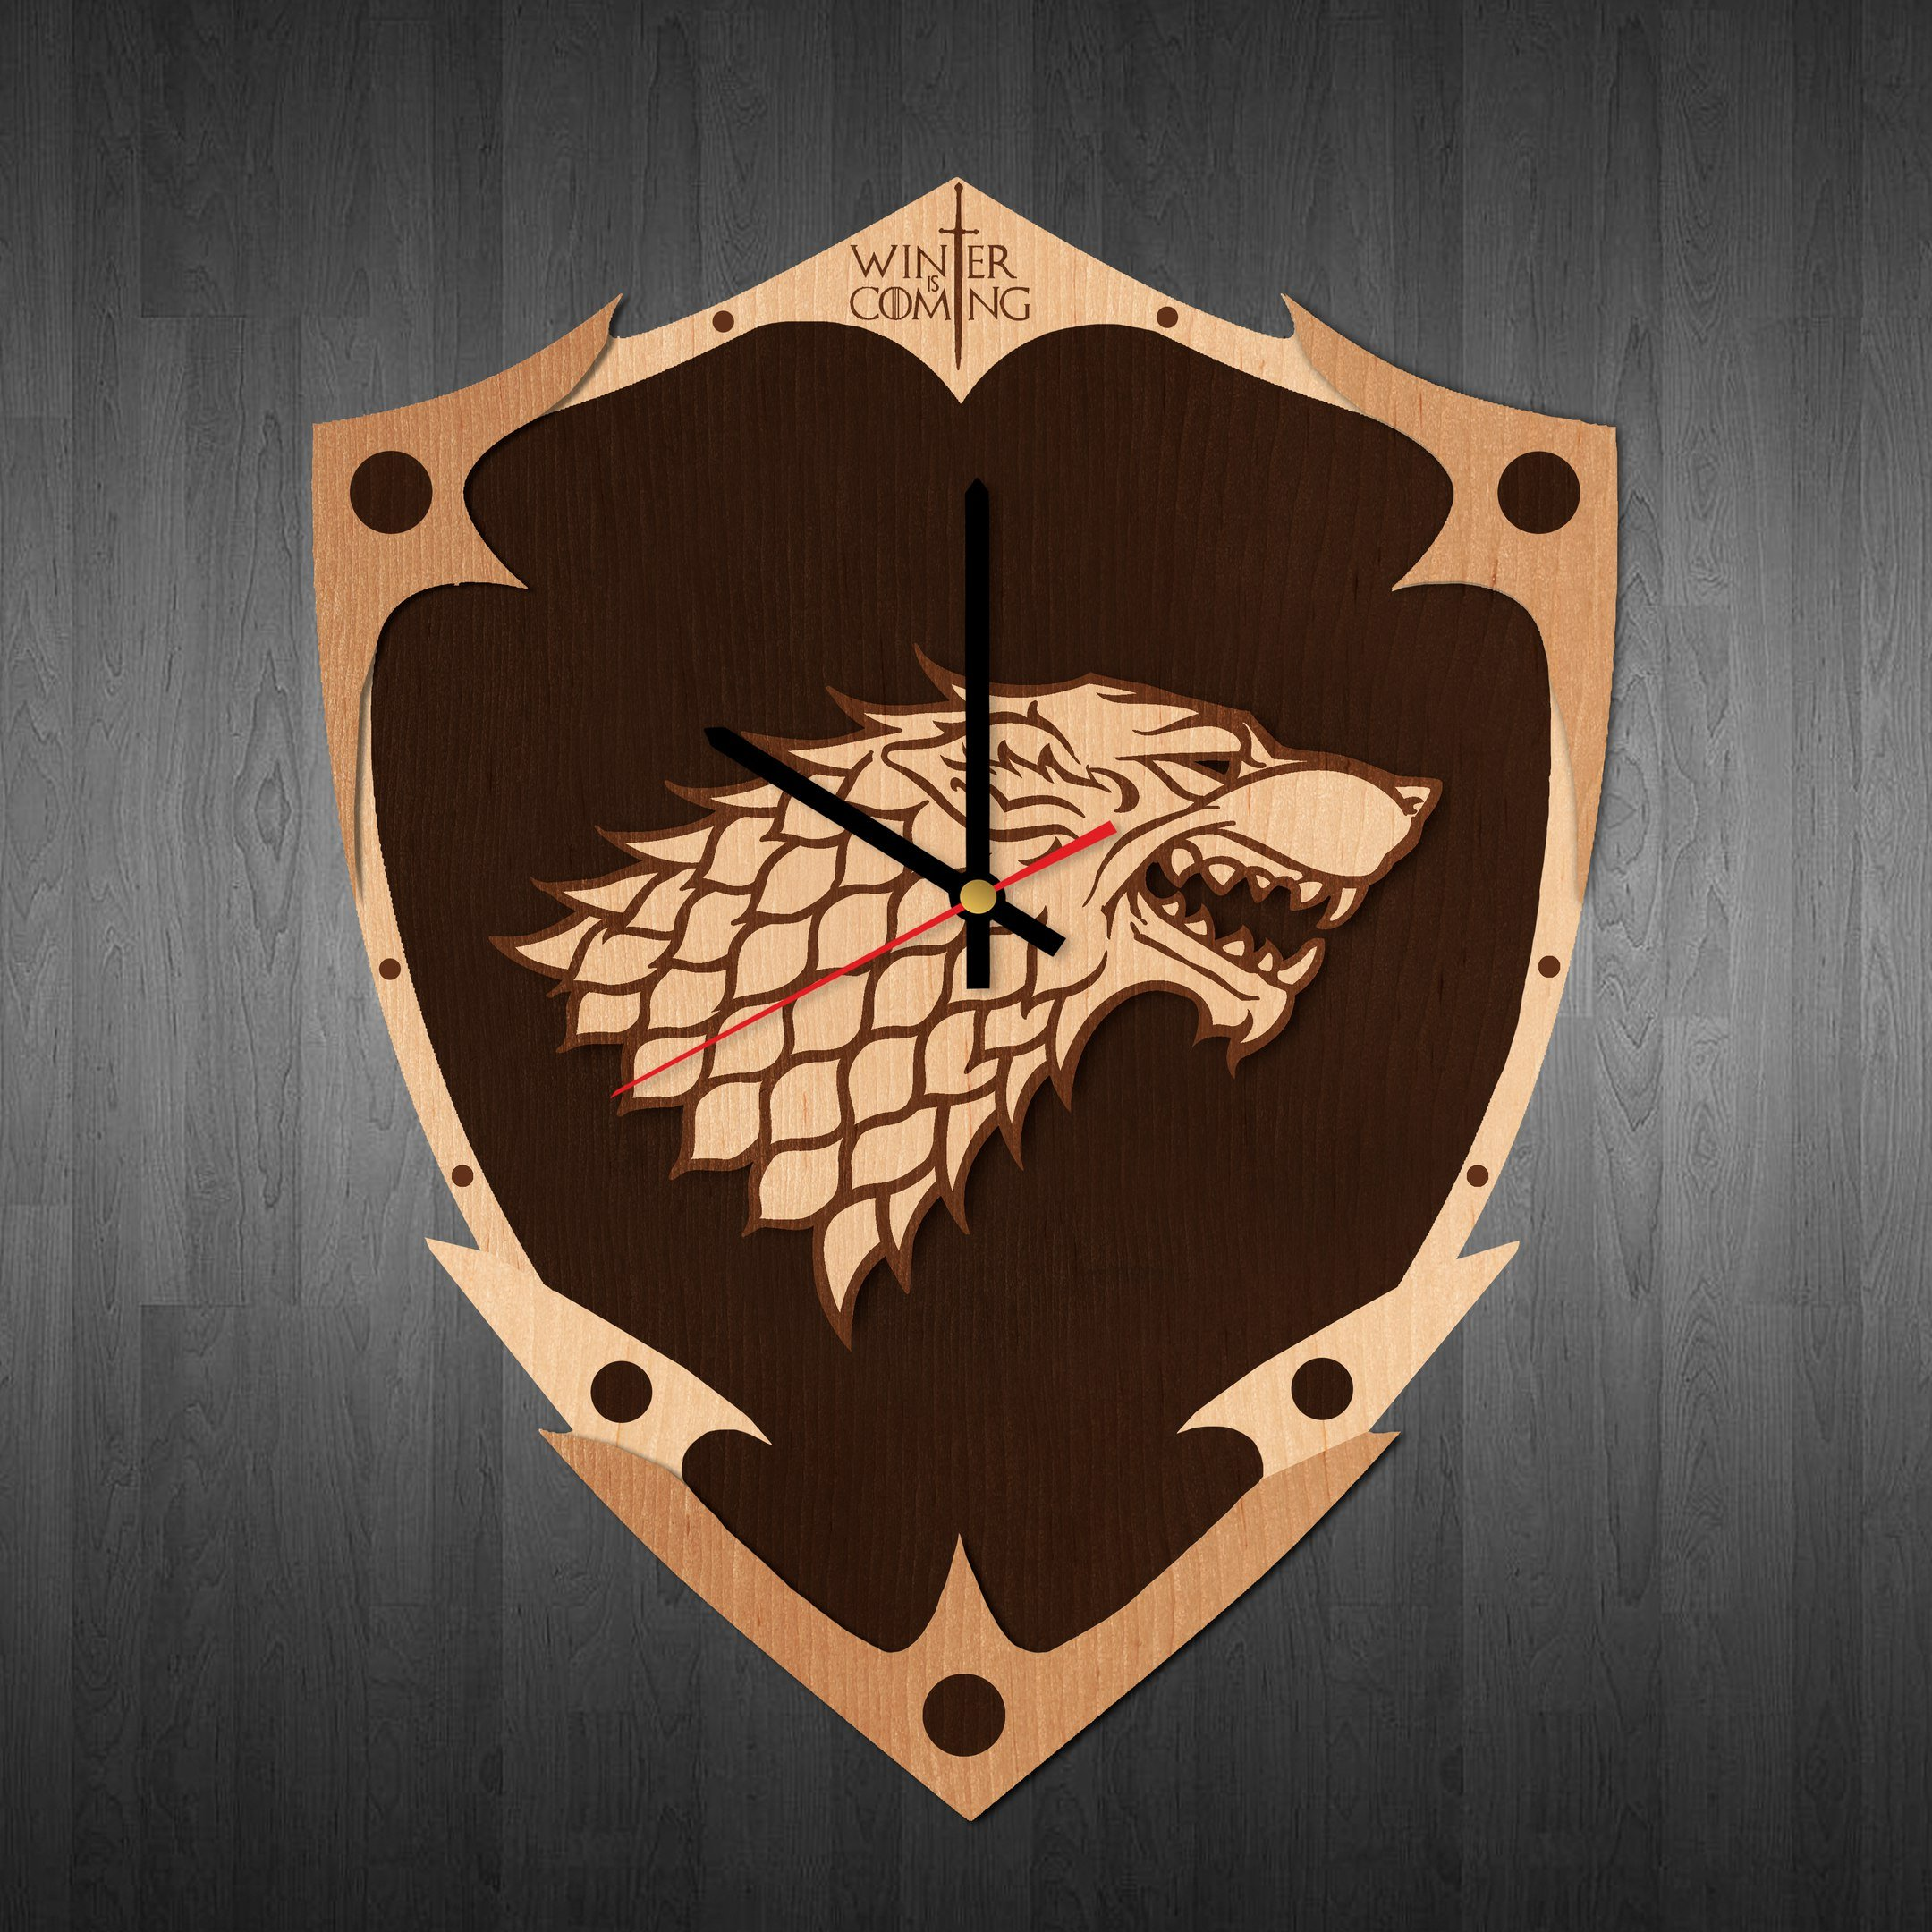 Wall clock Game of thrones, game of thrones wall poster, Game of thrones wall decal